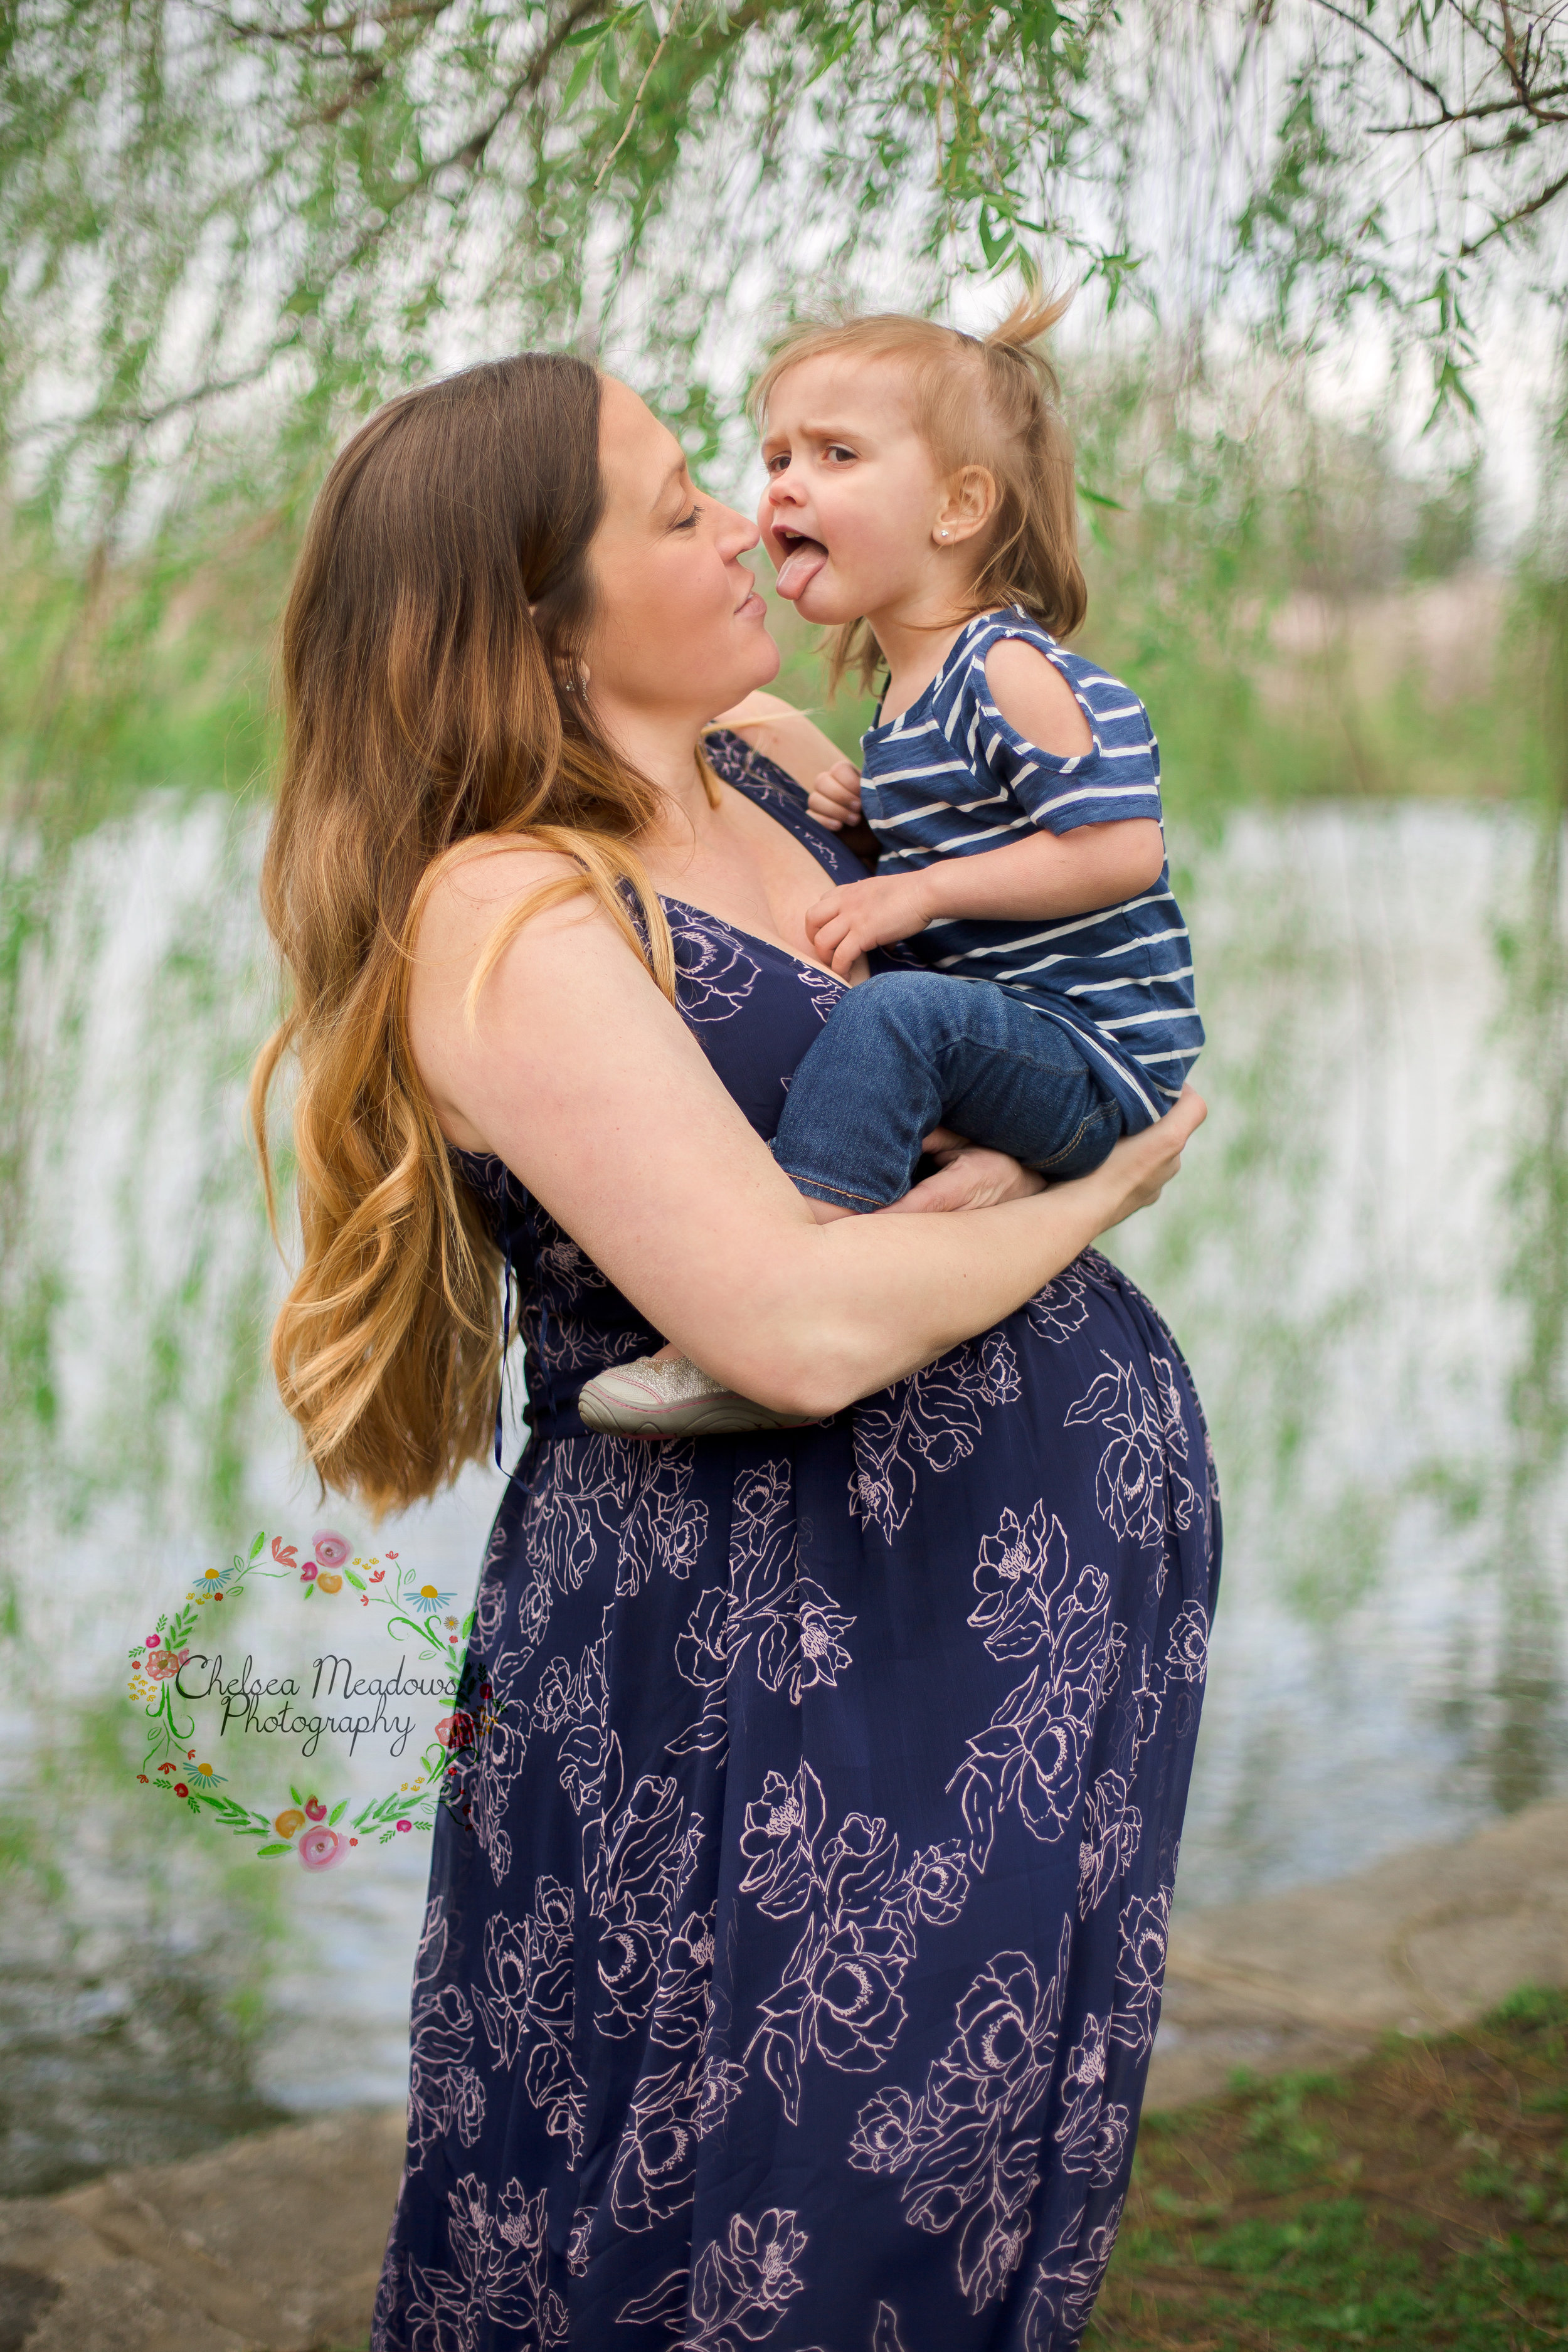 Gann Maternity Session - Nashville Maternity Photographer - Chelsea Meadows Photography (21).jpg